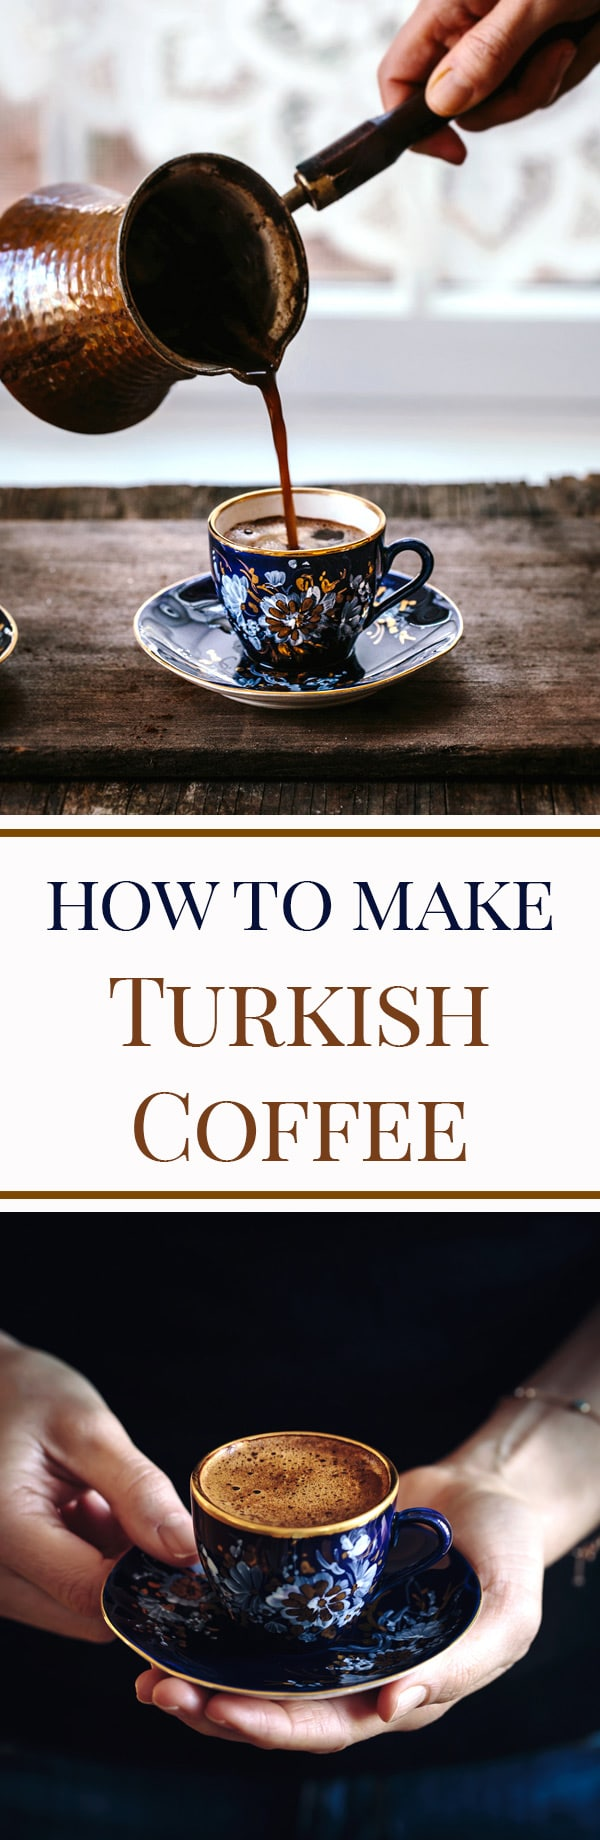 Learn How To Make Turkish Coffee With Step By Step Photos